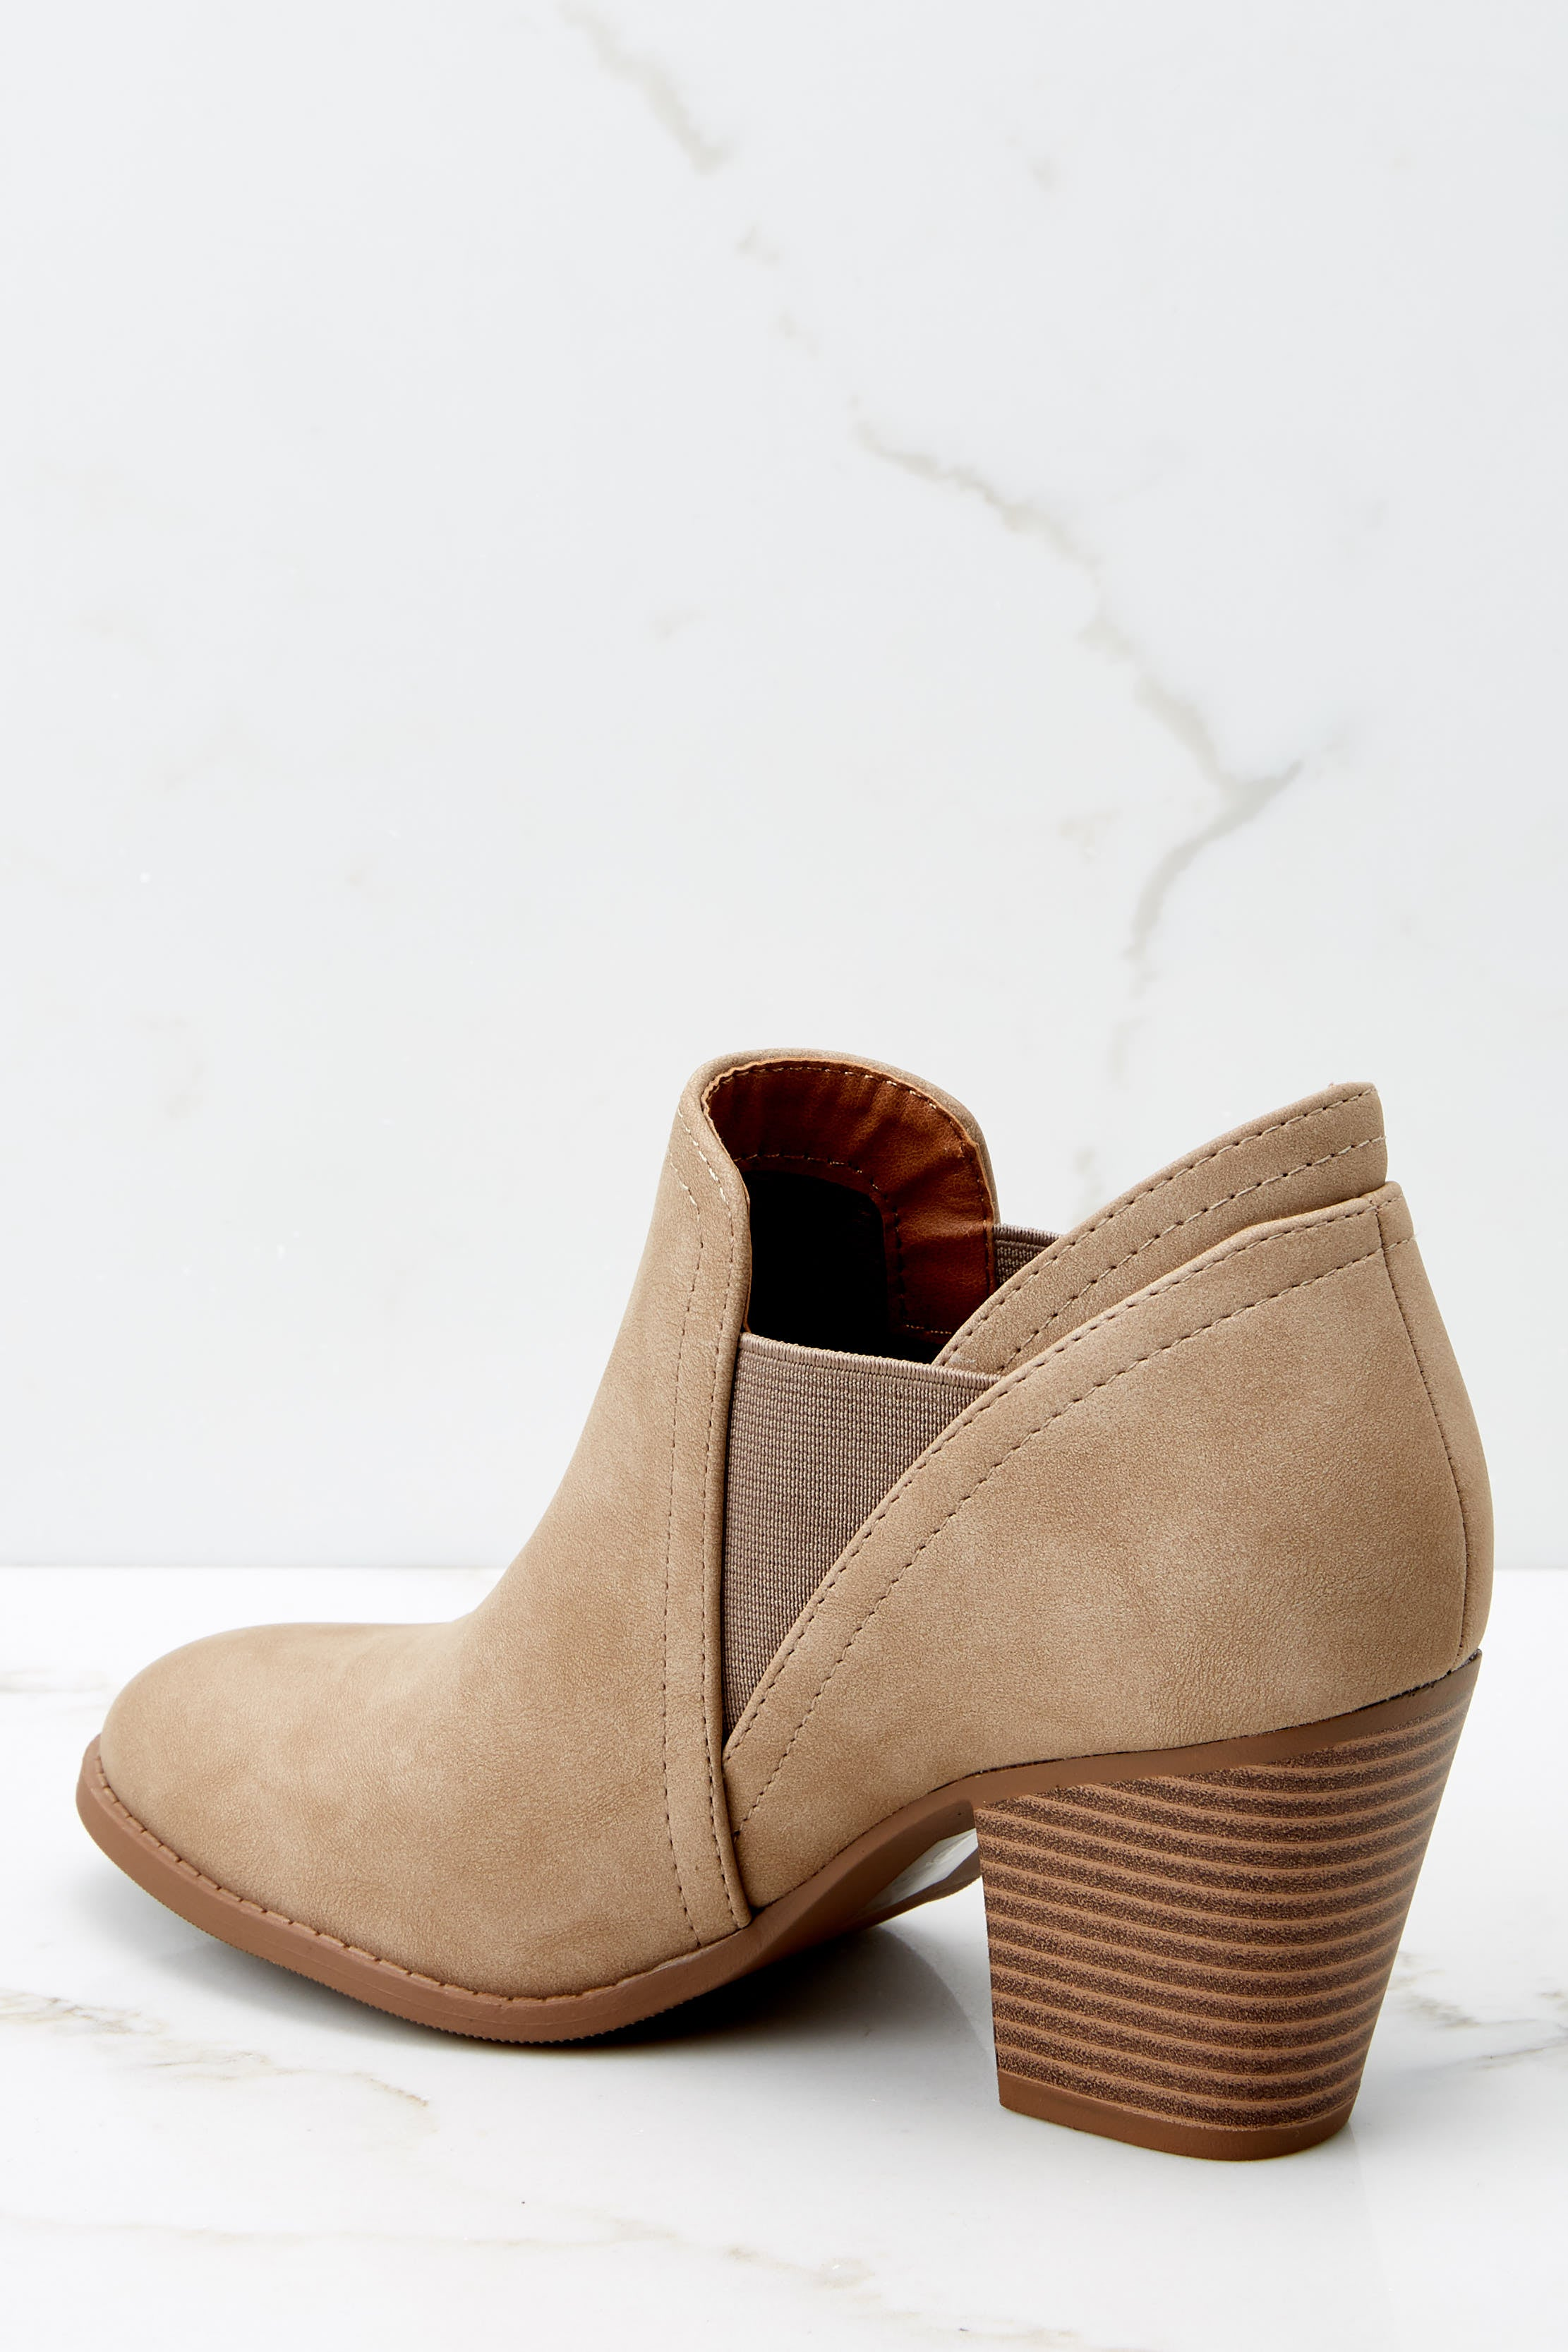 4 Make A Path Taupe Ankle Booties at reddress.com